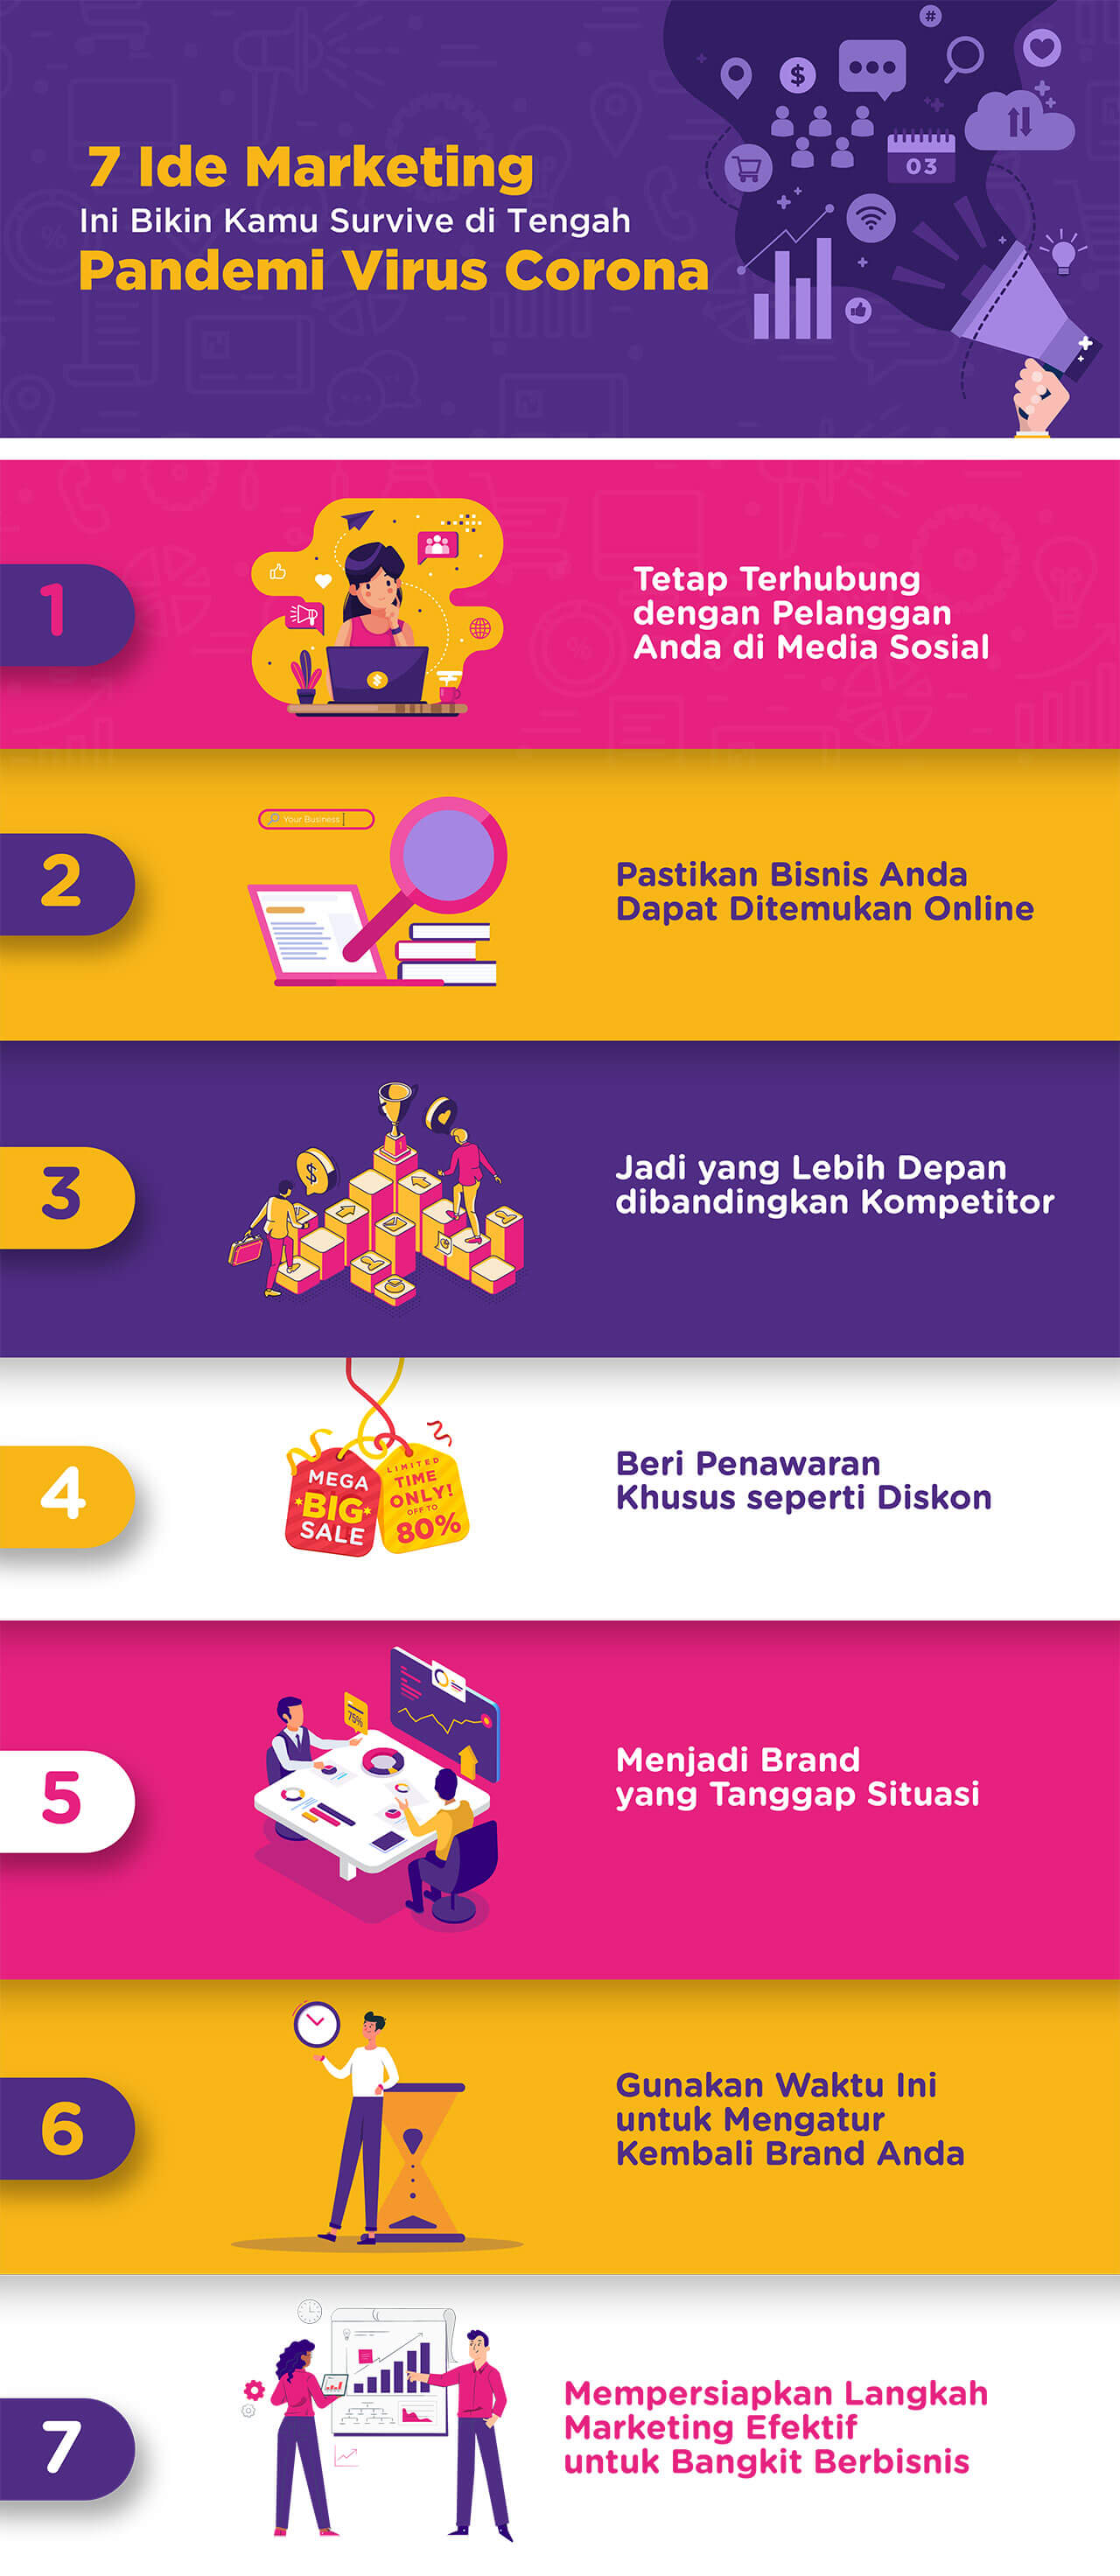 7 Ide Marketing Ini Bikin Kamu Survive Di Tengah Pandemi Virus